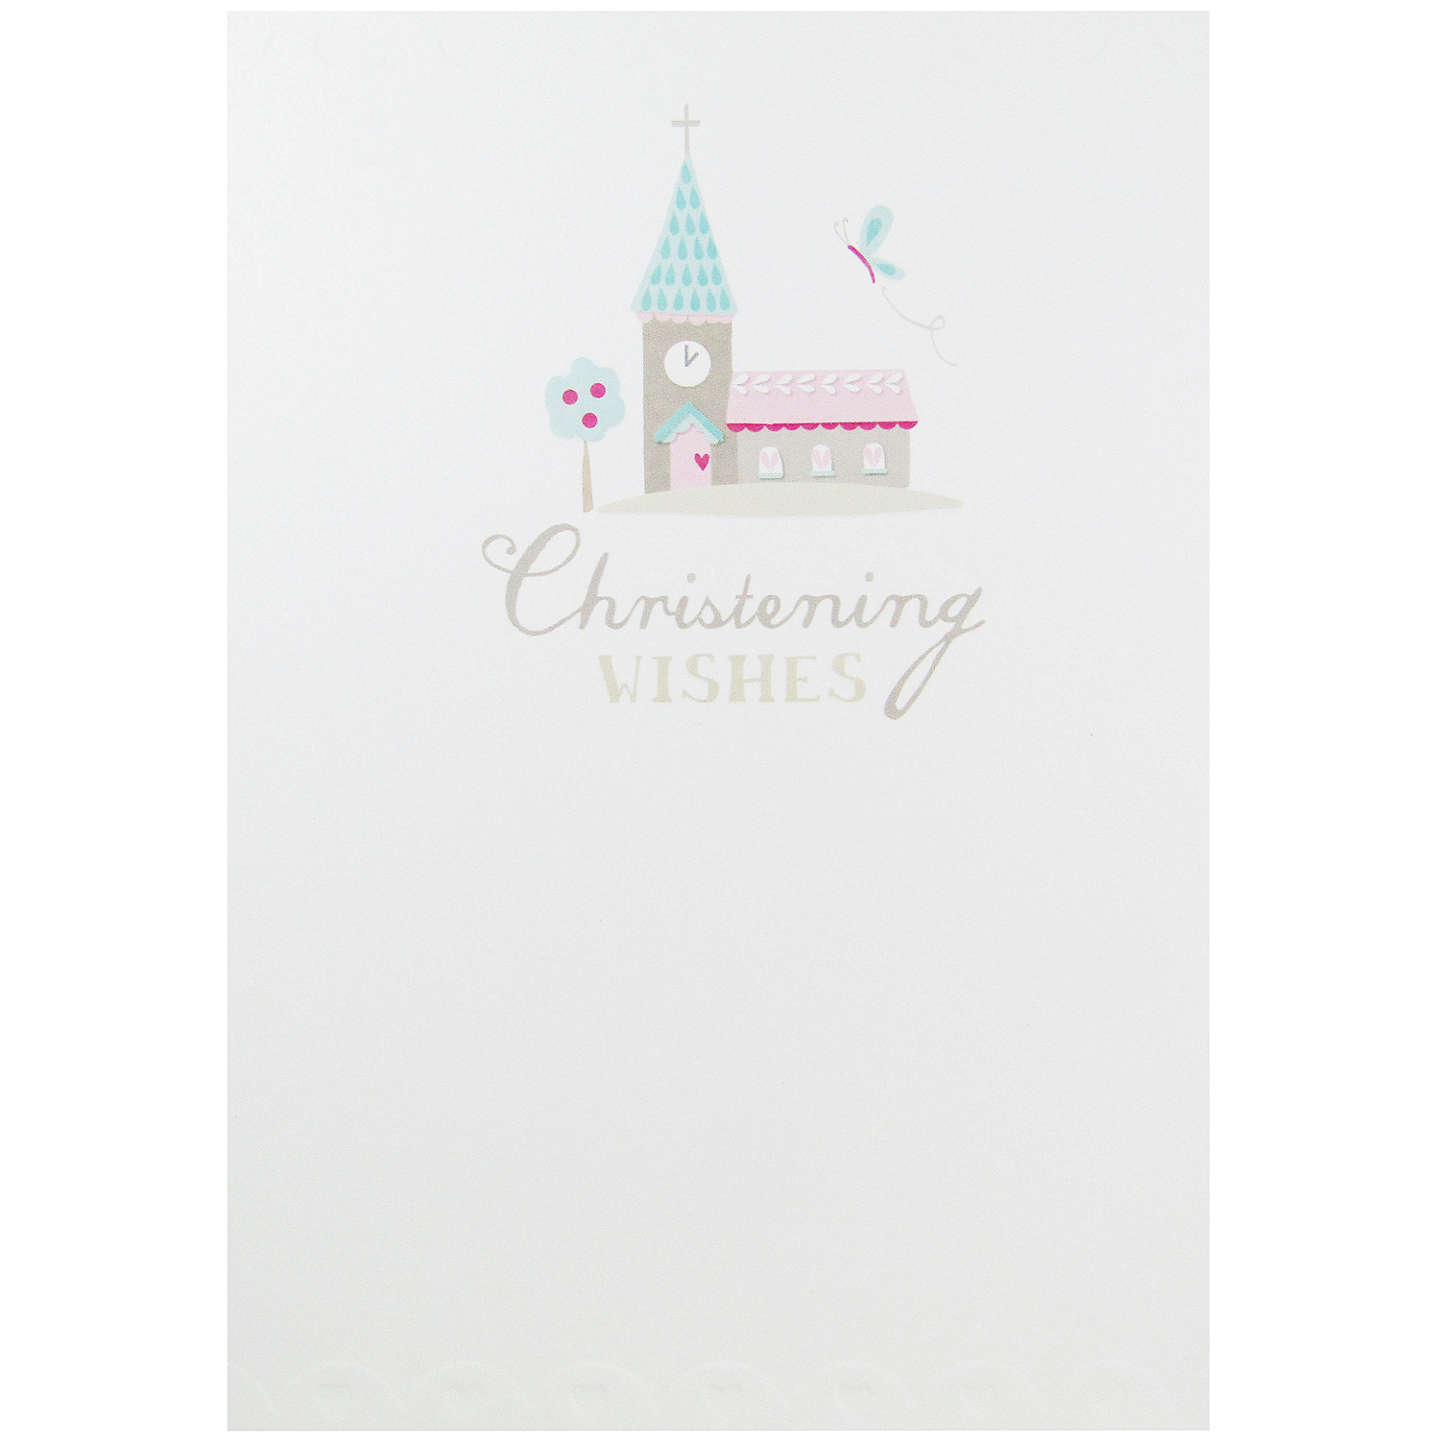 Carte blanche christening greeting card at john lewis buycarte blanche christening greeting card online at johnlewis m4hsunfo